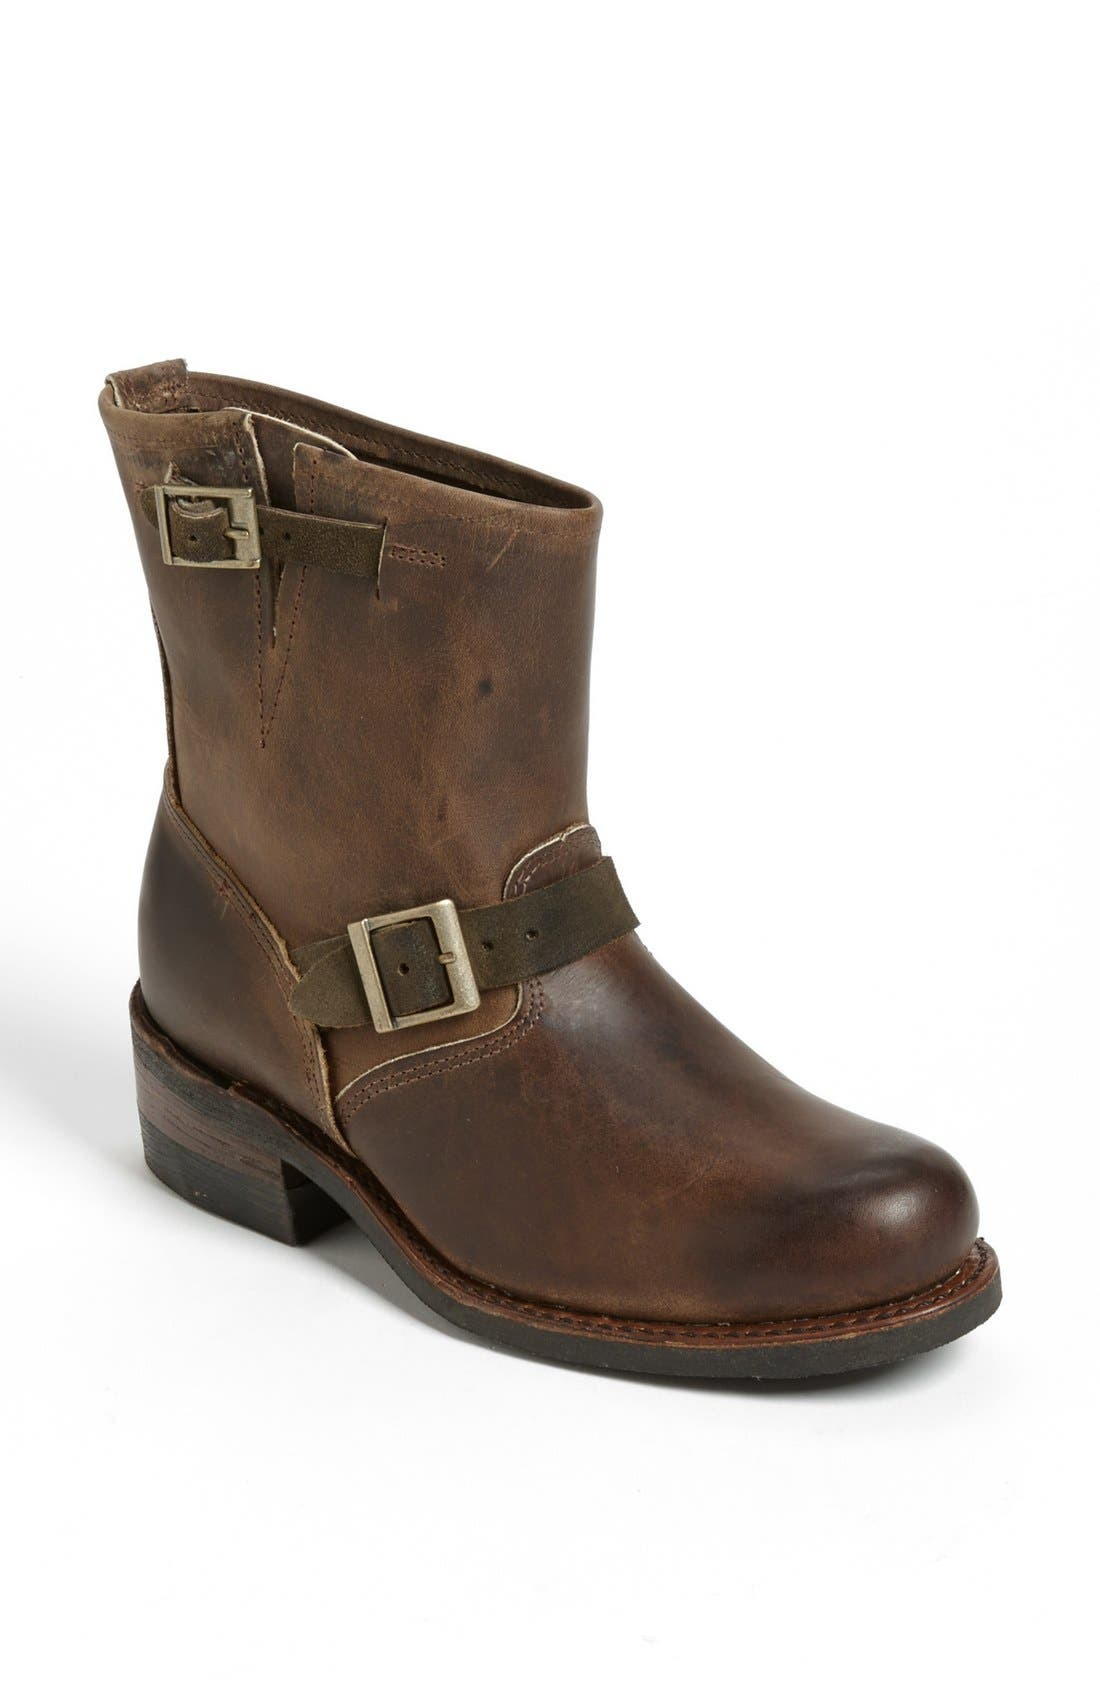 Alternate Image 1 Selected - Vintage Shoe Company 'Sophie' Boot